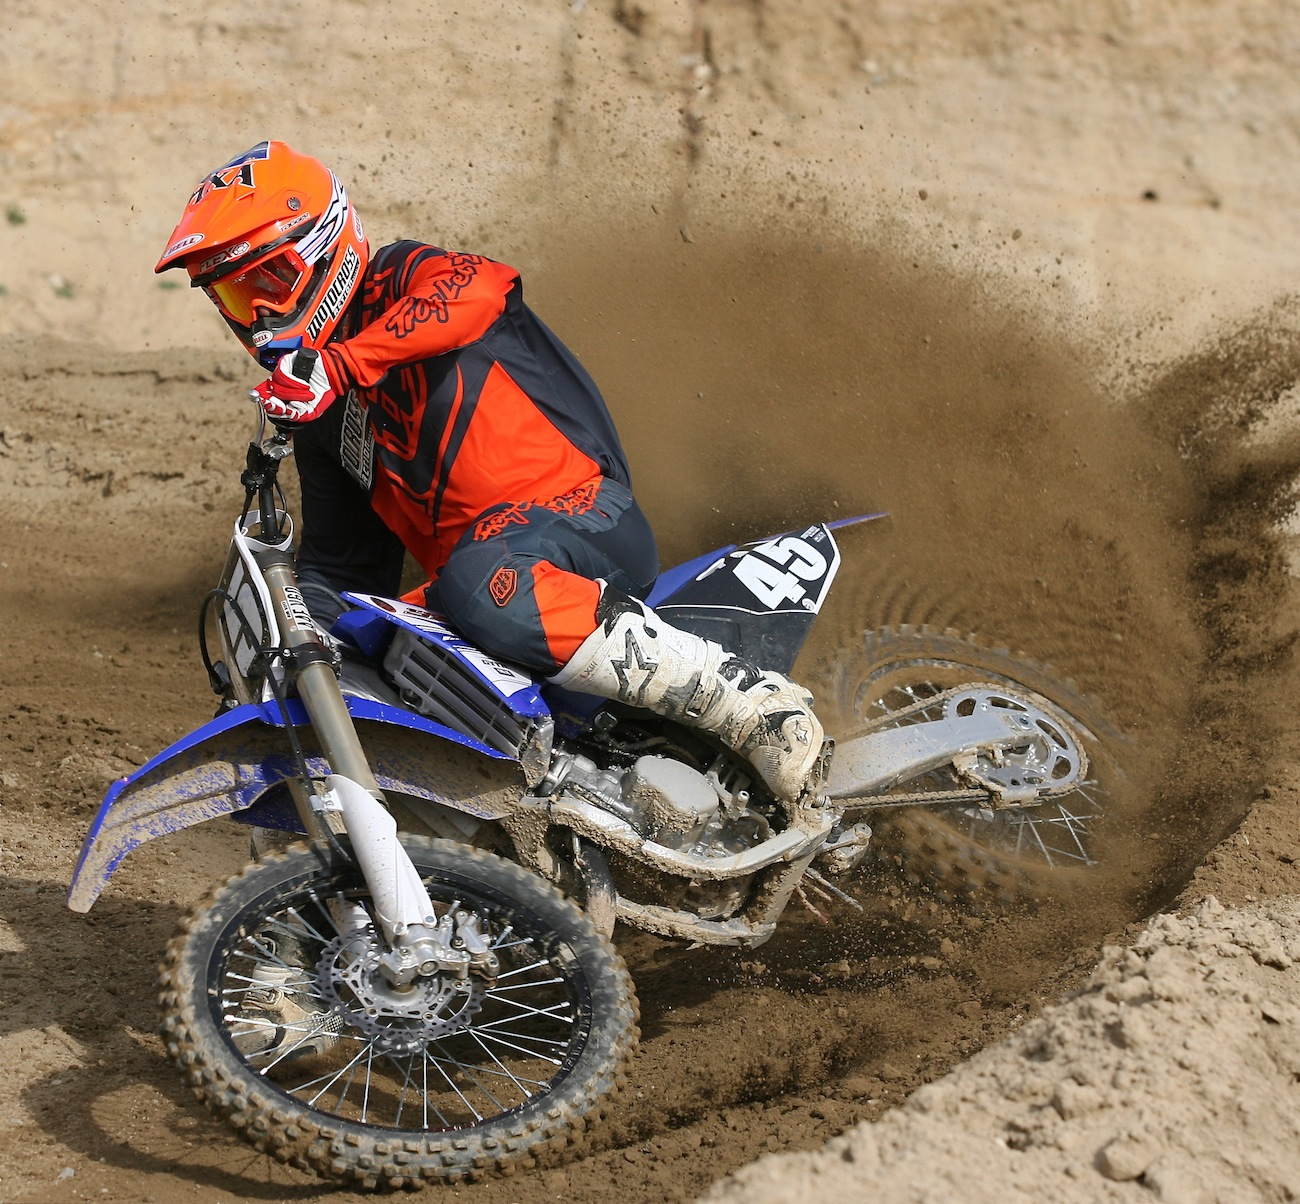 2000 Yzf350 Banshee Wiring Diagram Electrical And